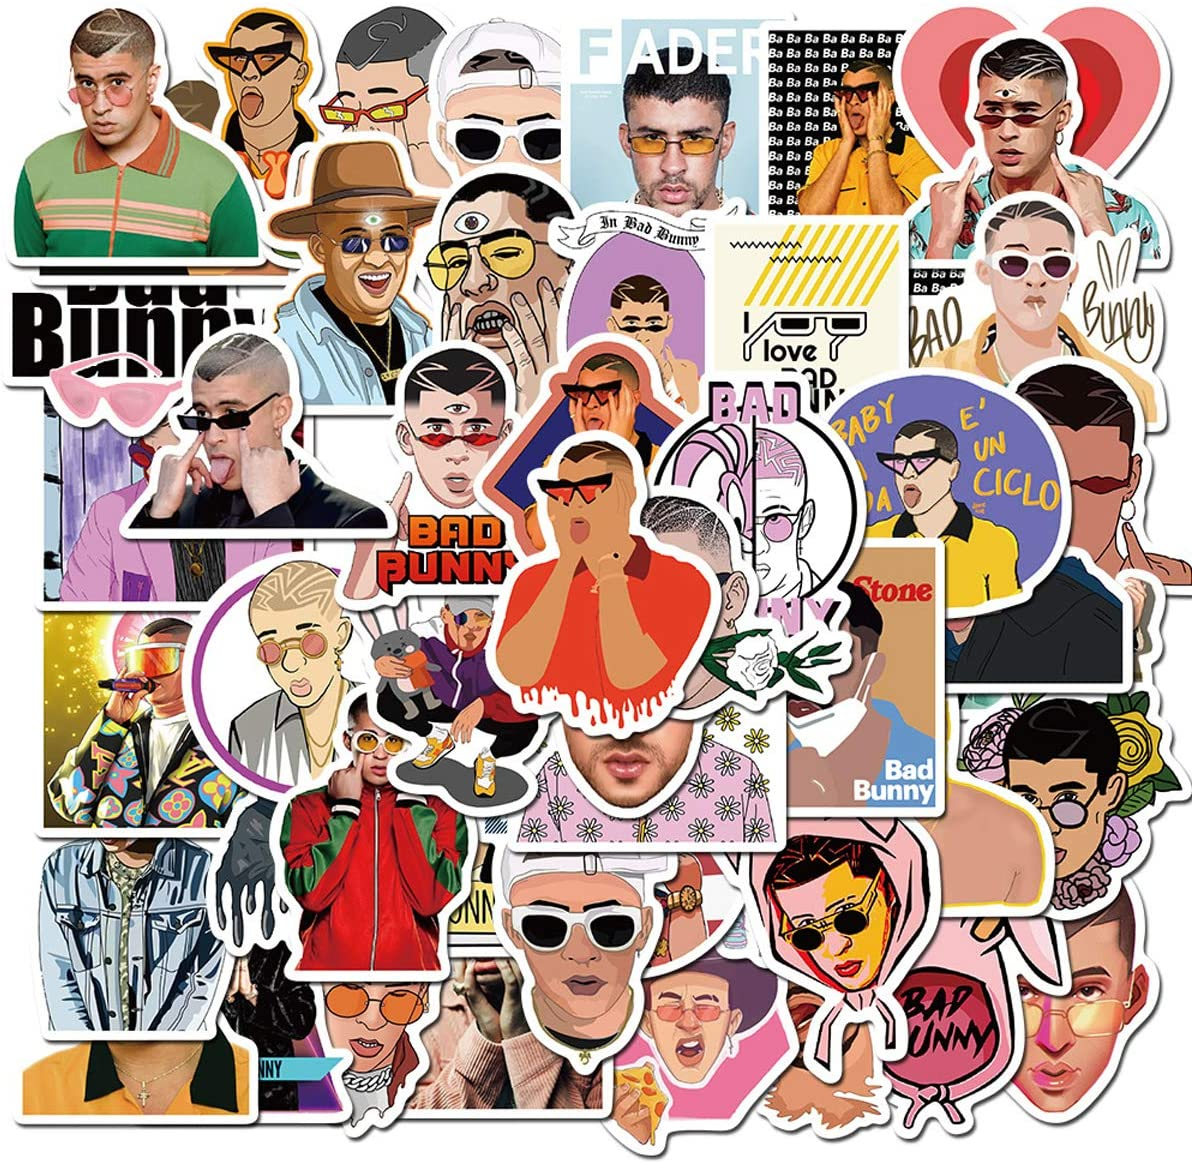 Pop Singer Bad Bunny Stickers 50PCS for Laptop and Water Bottles,Waterproof Durable Trendy Vinyl Laptop Decal Stickers Pack for Teens, Water Bottles, Computer, Travel Case (Bad Bunny)